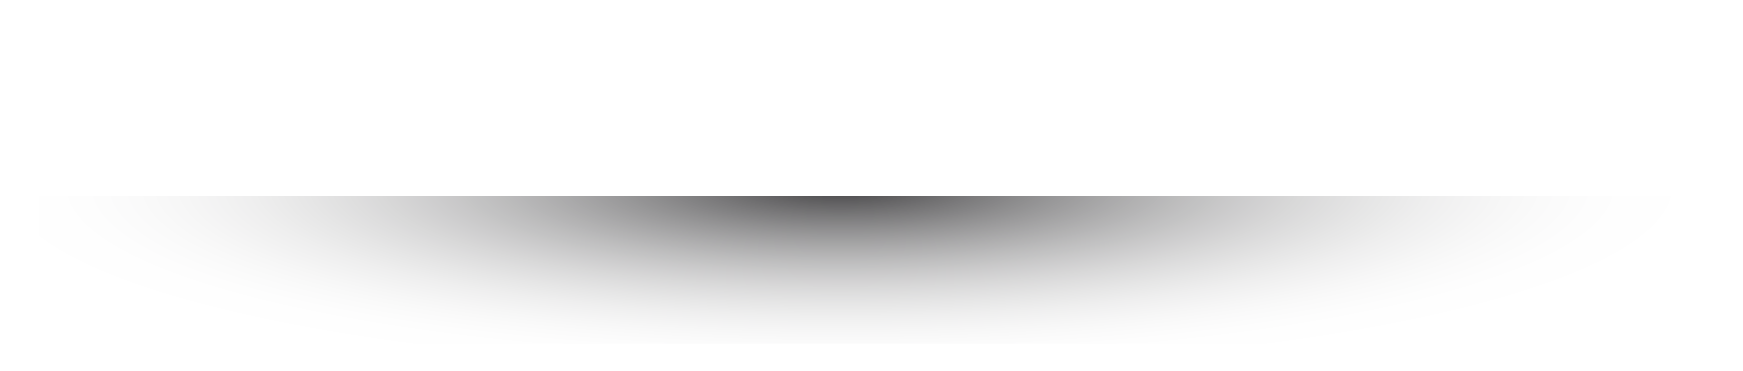 Page Divider Png